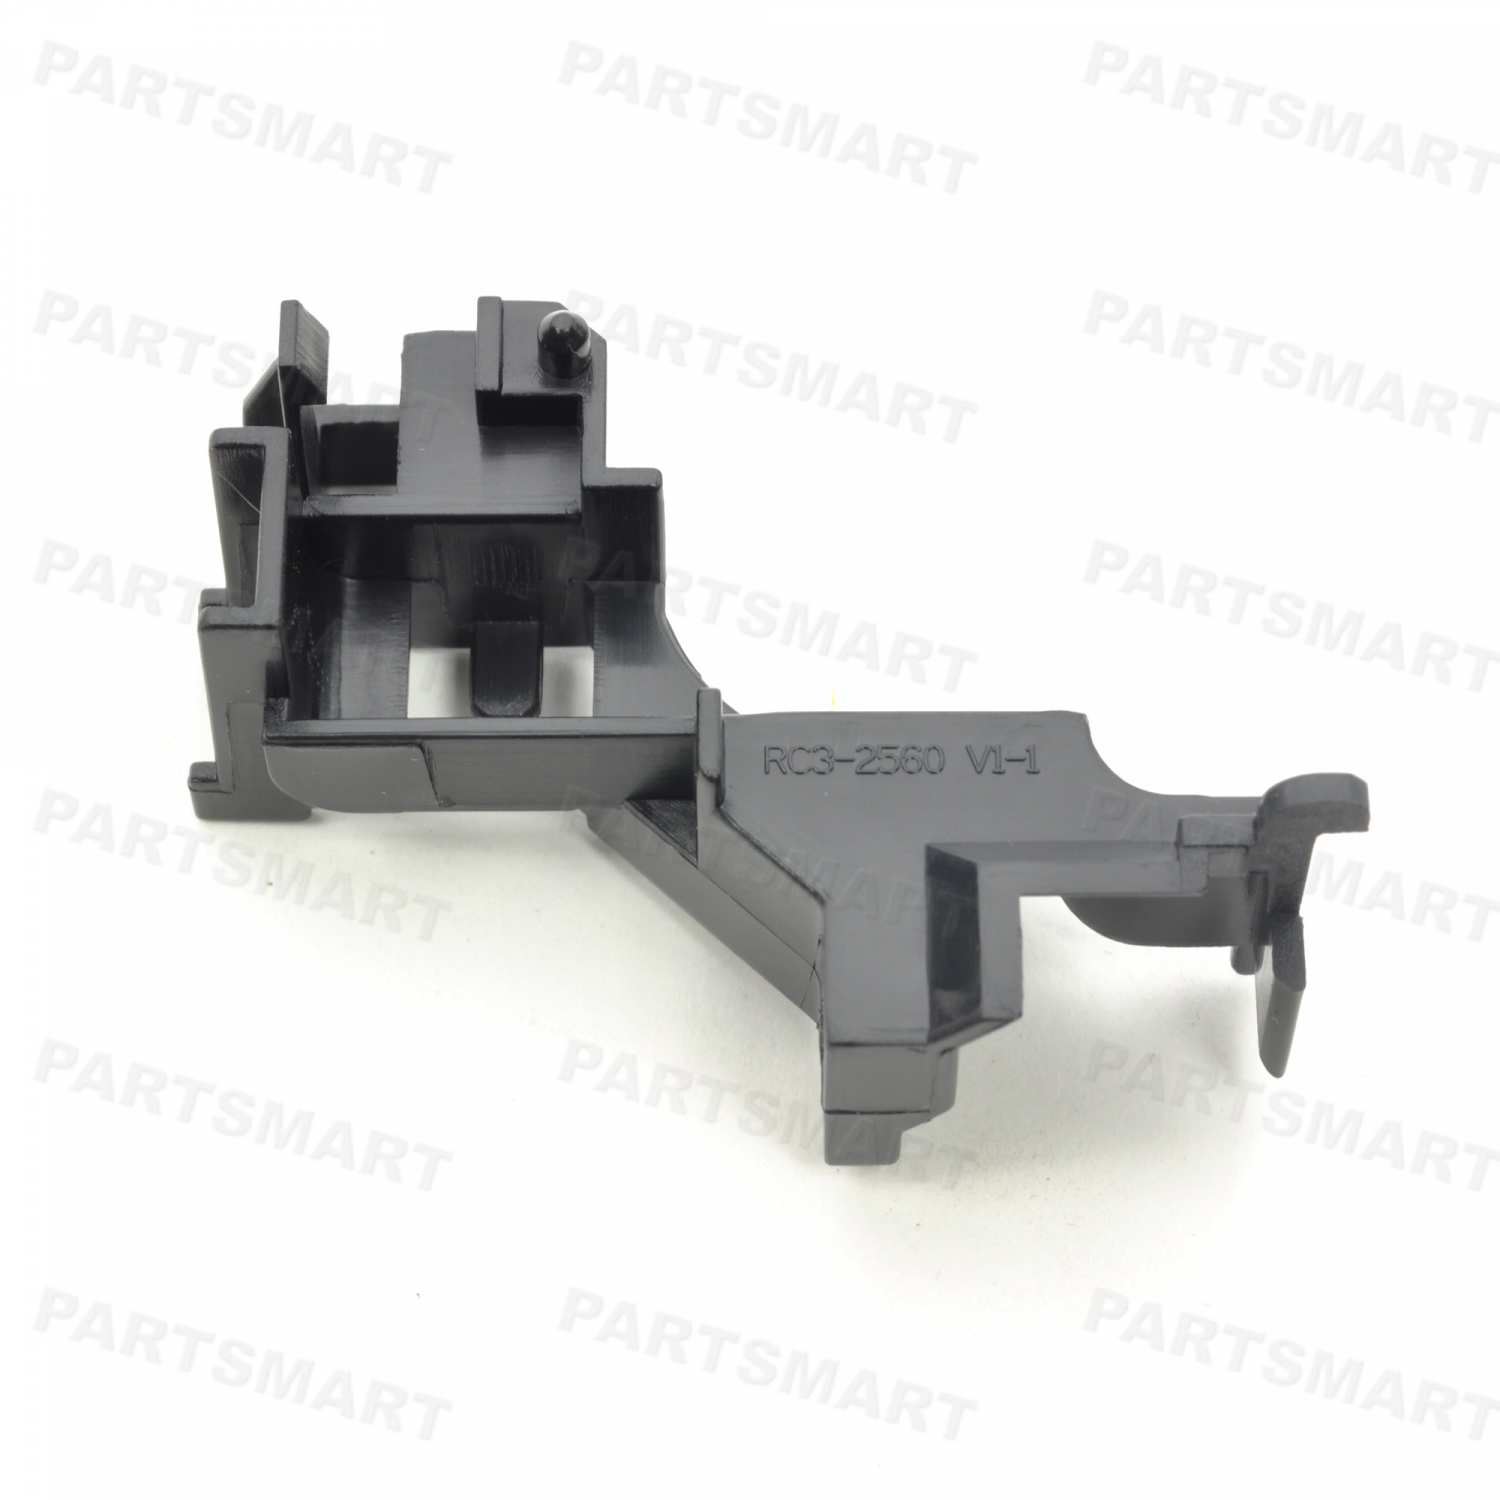 RC3-2560-000 Wire Holder, Right